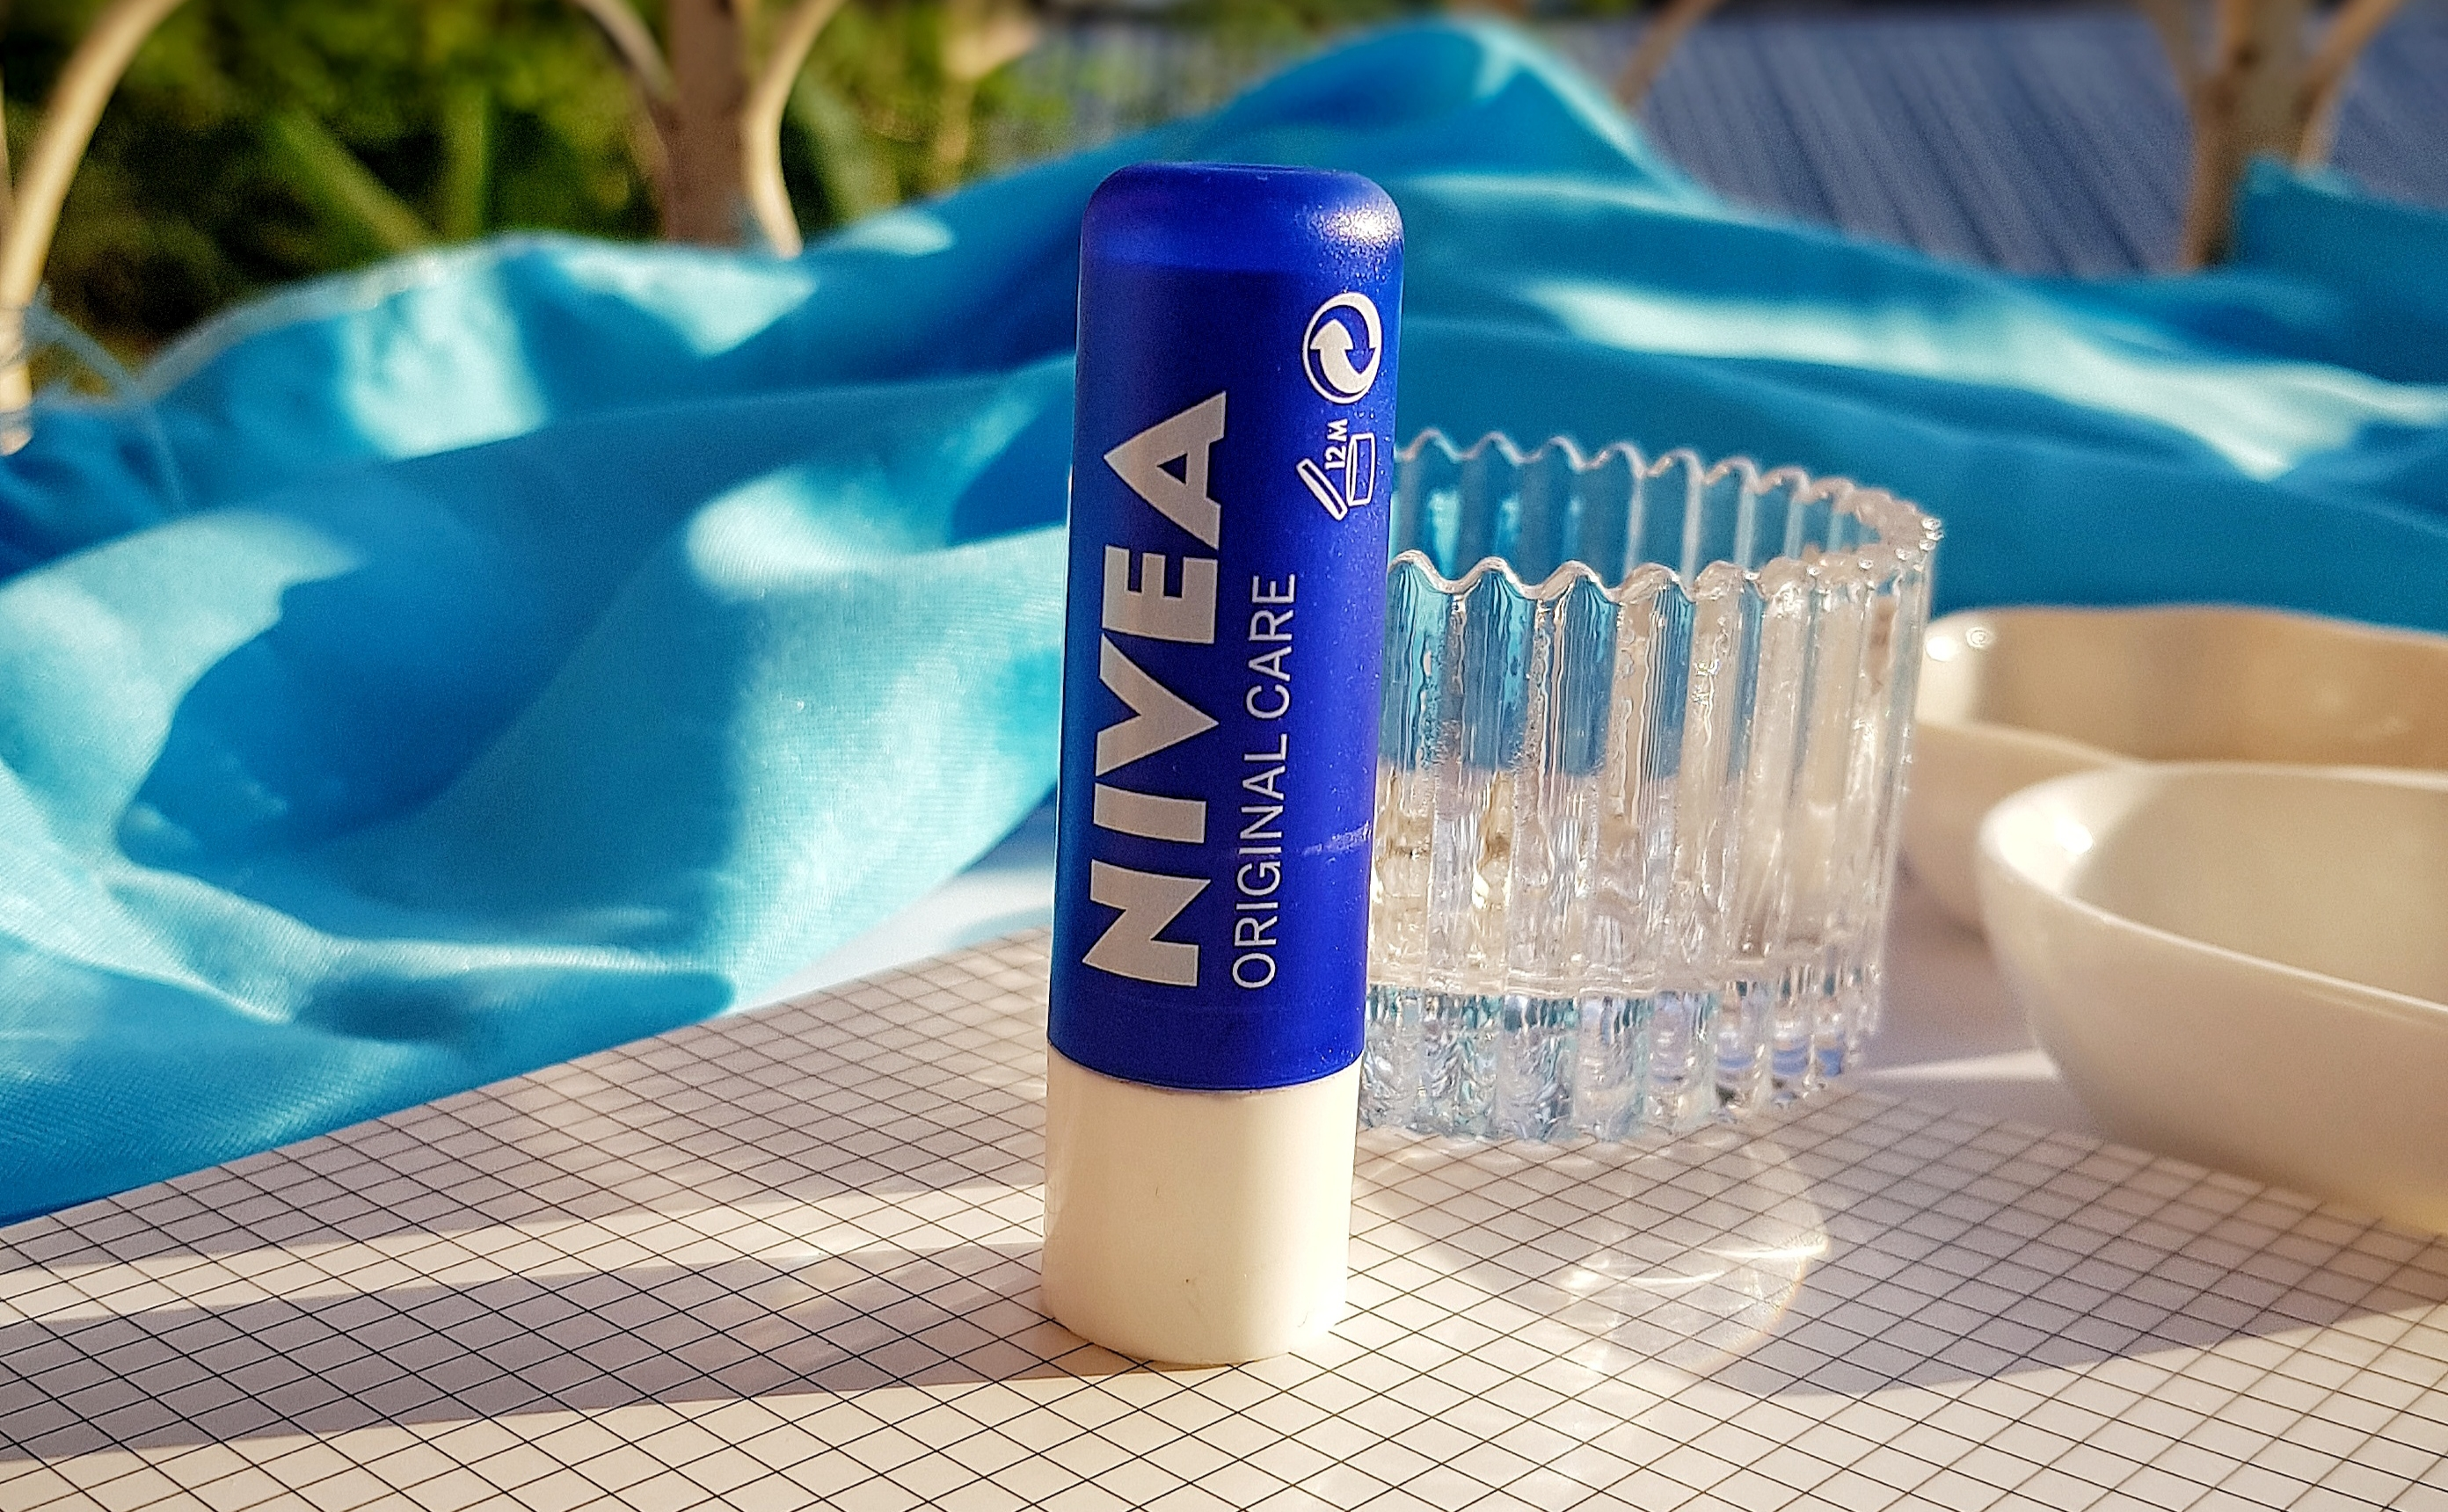 My Favourite Daily Lip Balm from NIVEA